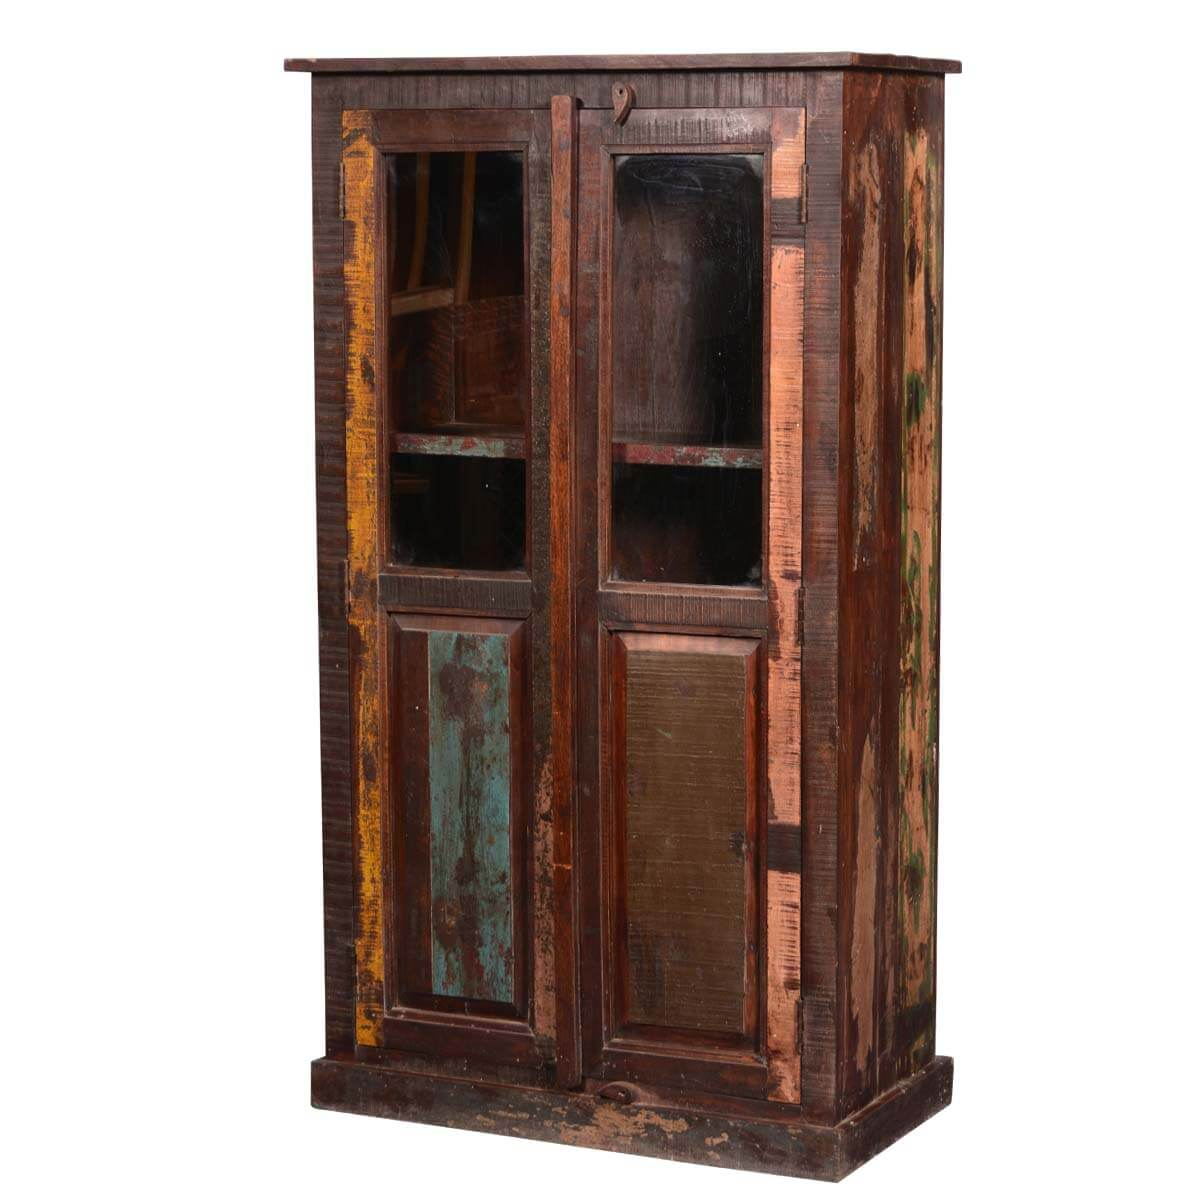 Reclaimed Wood Cabinets ~ Appalachian rustic reclaimed wood armoire display cabinet